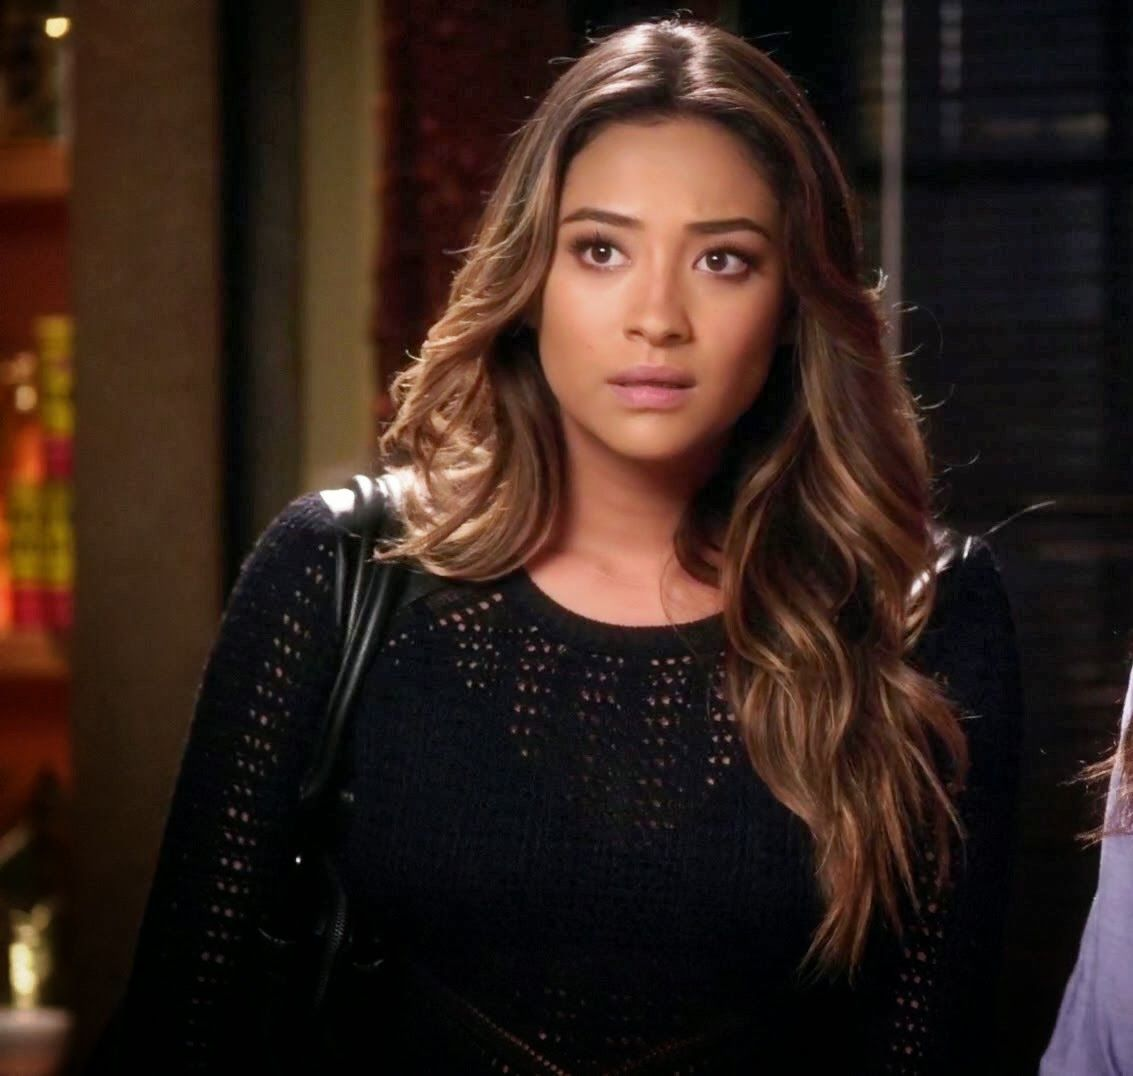 "Emily's Rachel Roy Top Long-Sleeve Scoop-Neck Faux-Leather Crochet Pretty Little Liars Season 4, Episode 18: ""Hot For Teacher"" - Spotted on ..."